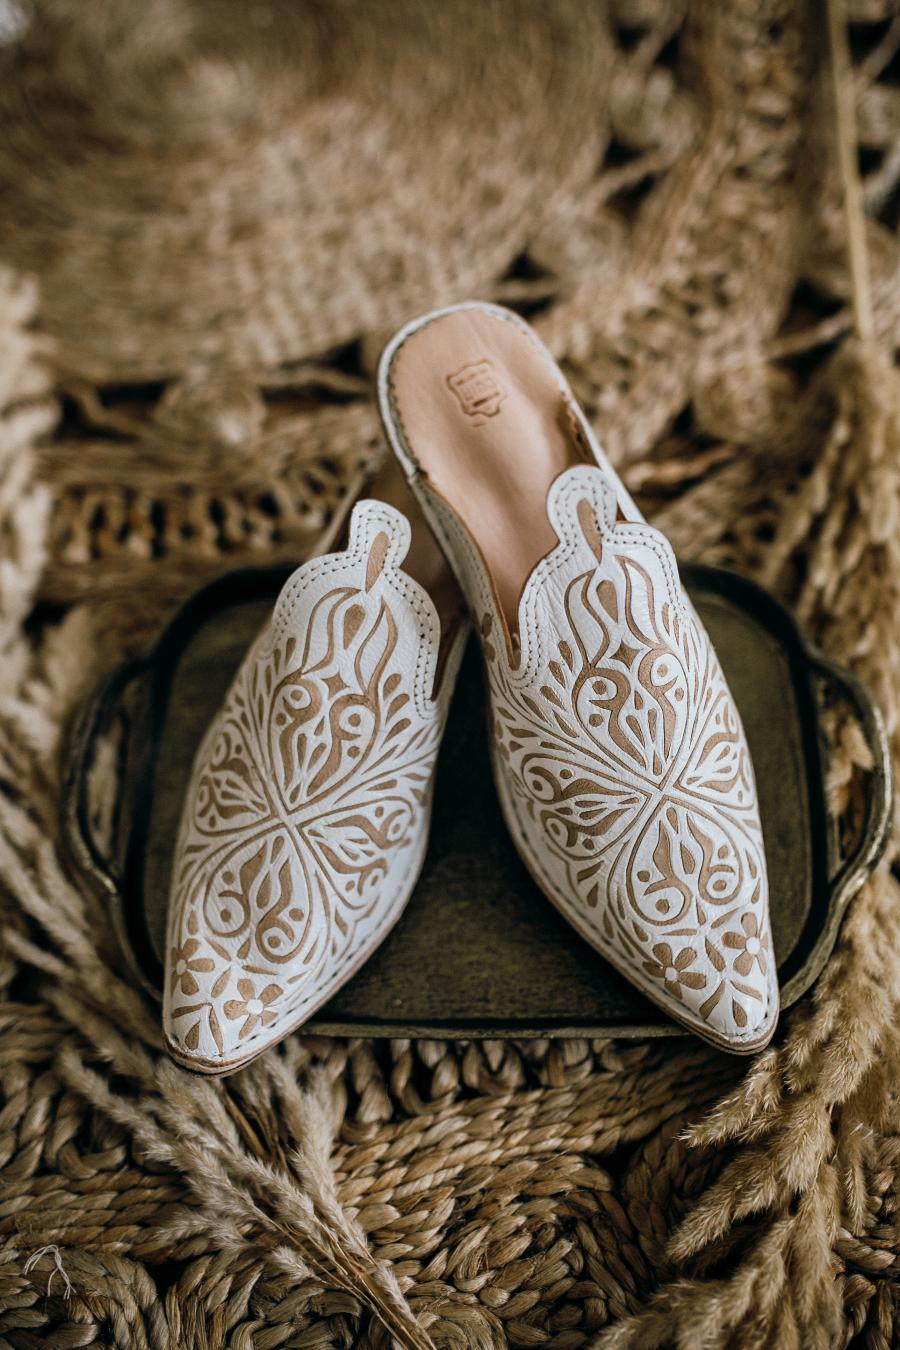 Moroccan Wedding Shoes is part of Boho wedding shoes, Boho wedding accessories, Boho wedding gifts, Wedding dress shoes, Wedding accessories, Boho wedding - EMBROIDERED WHITE LEATHER MOROCCAN WEDDING BOOTS  SOURCED DURING A MAGICAL AND EYE OPENING BACKPACKING TRIP THROUGH MOROCCO LAST SPRING  BEAUTIFUL SCALLOP EDGES AND TAN DETAILING HIGHLIGHTS THE BEAUTY OF THE HAND EMBROIDERED SHOES